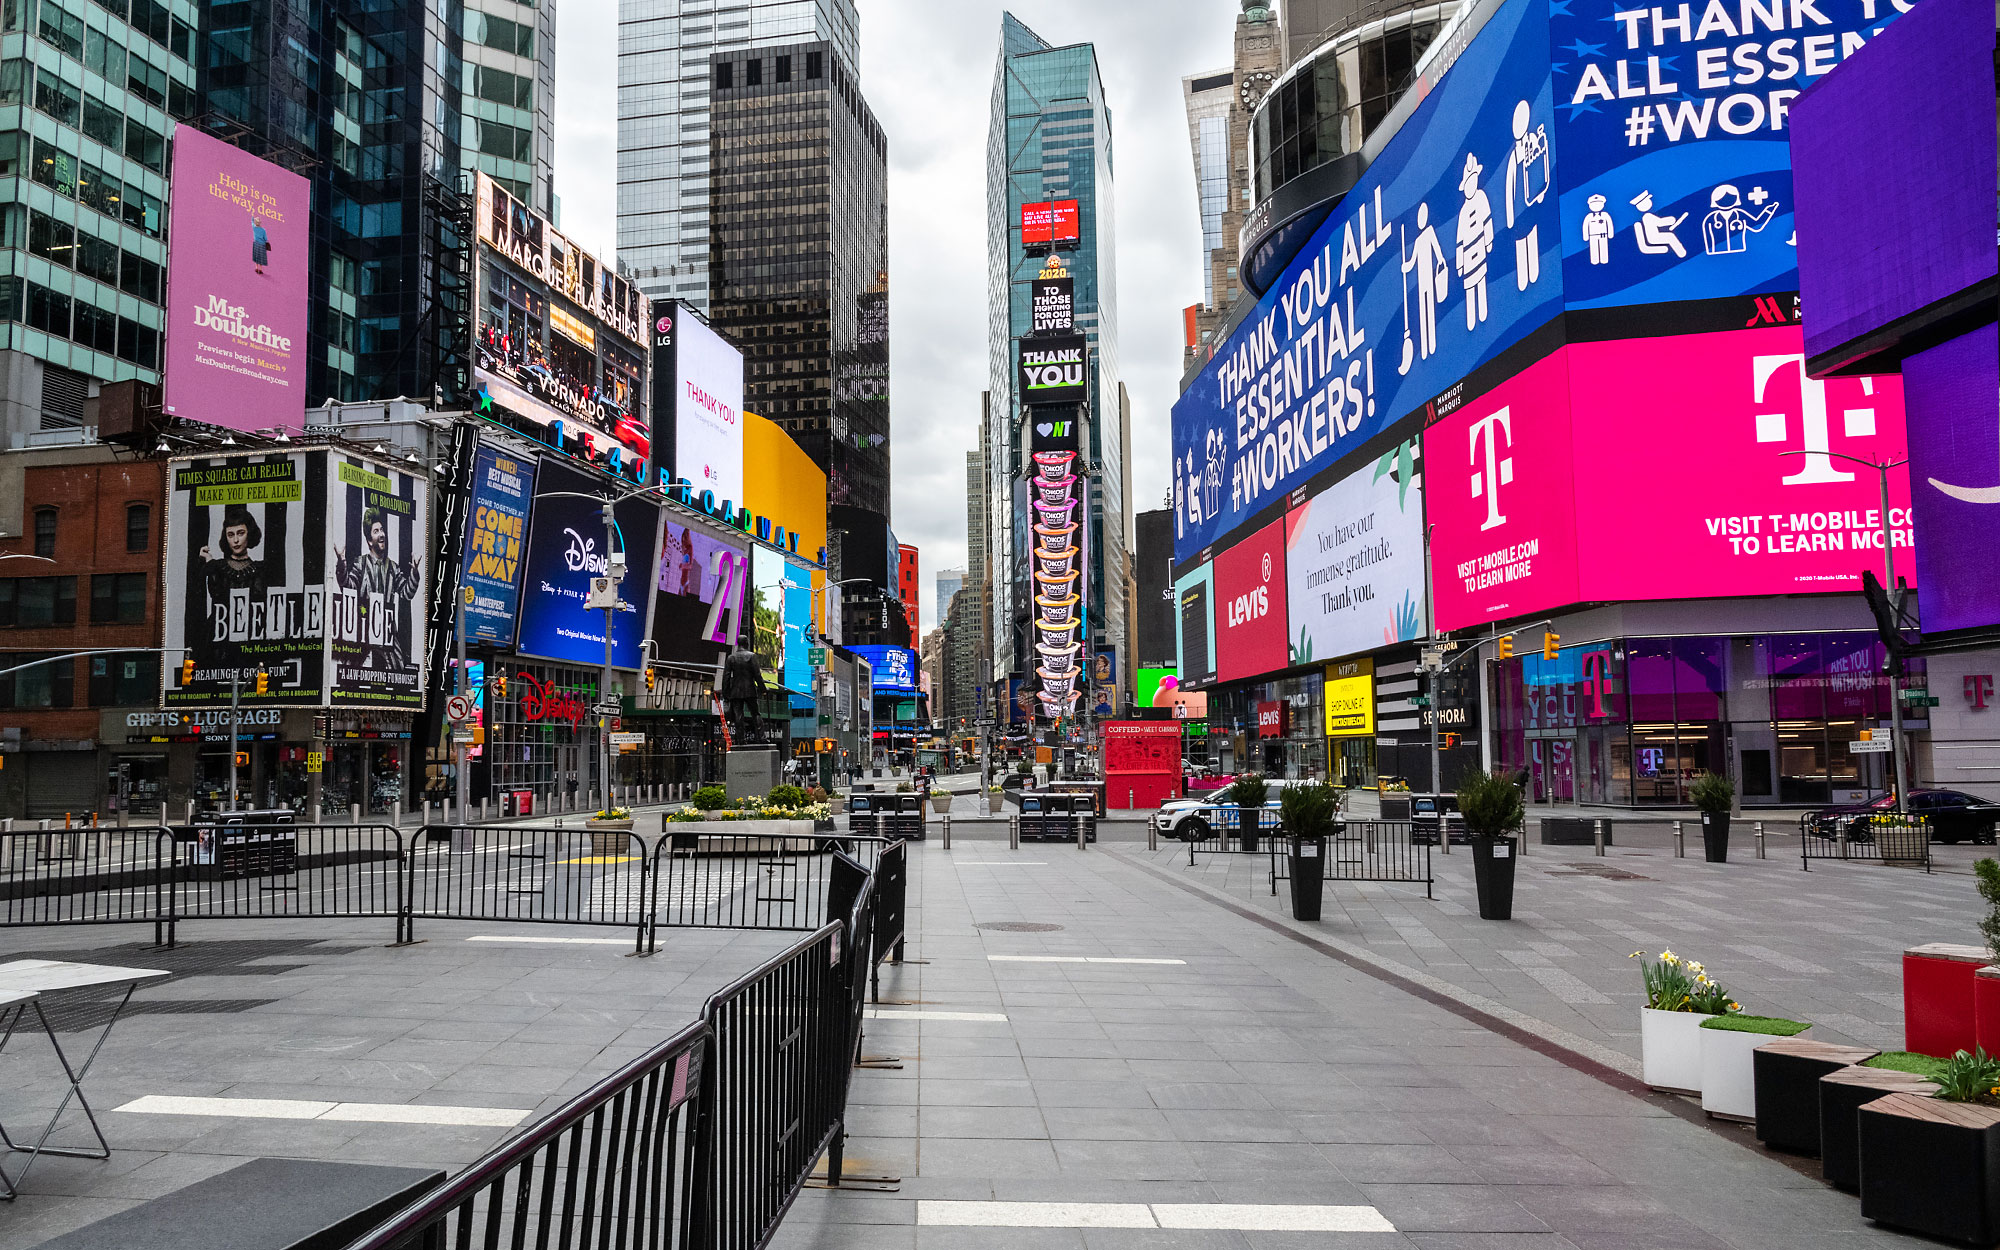 Photograph of Times Square in New York City, almost empty of people during the COVID-19 pandemic.